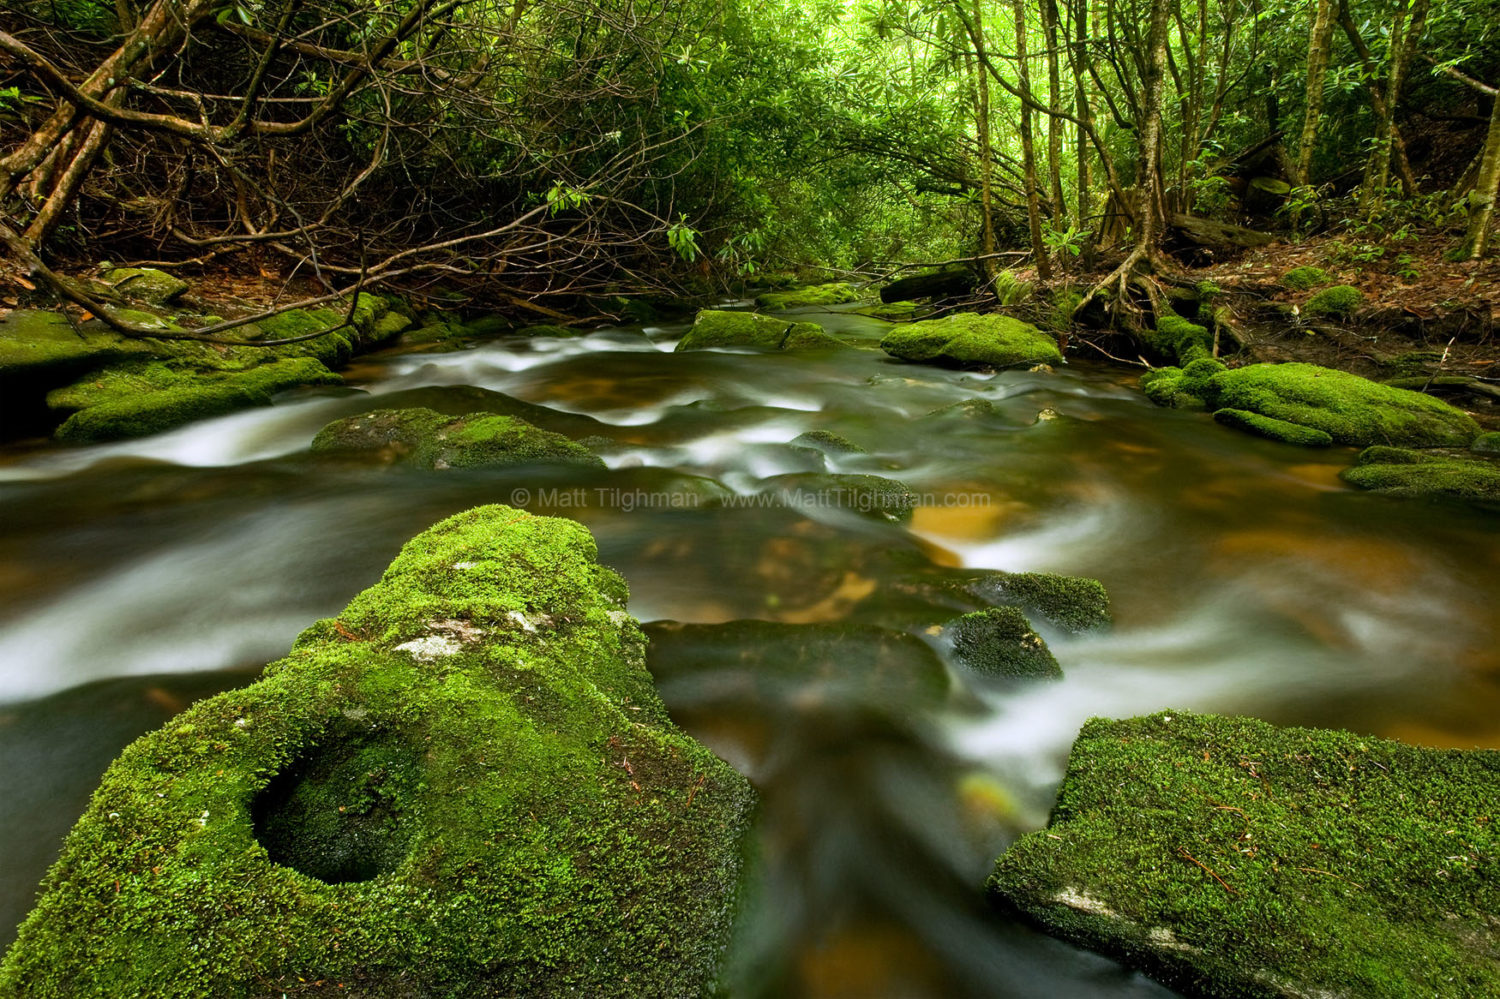 Fine art stock photograph of lush Appalachian mountain stream. The powerful stream wears down the hard granite boulders with constant unstoppable erosion.